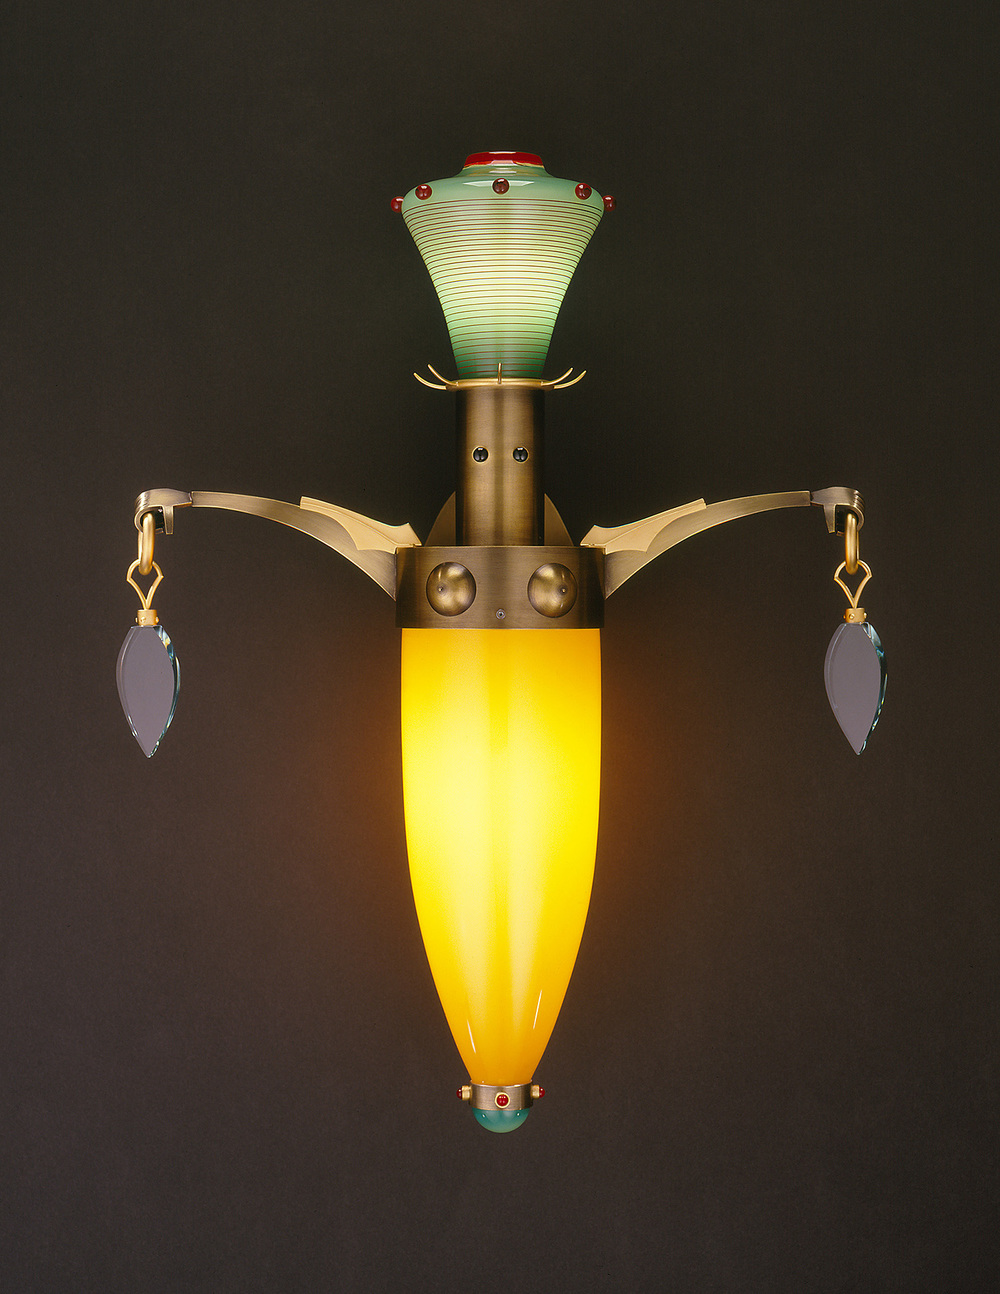 Presents   2000. Blown glass, nickel and gold-plated bronze, and lampworked glass. 24 x 18 x 8""